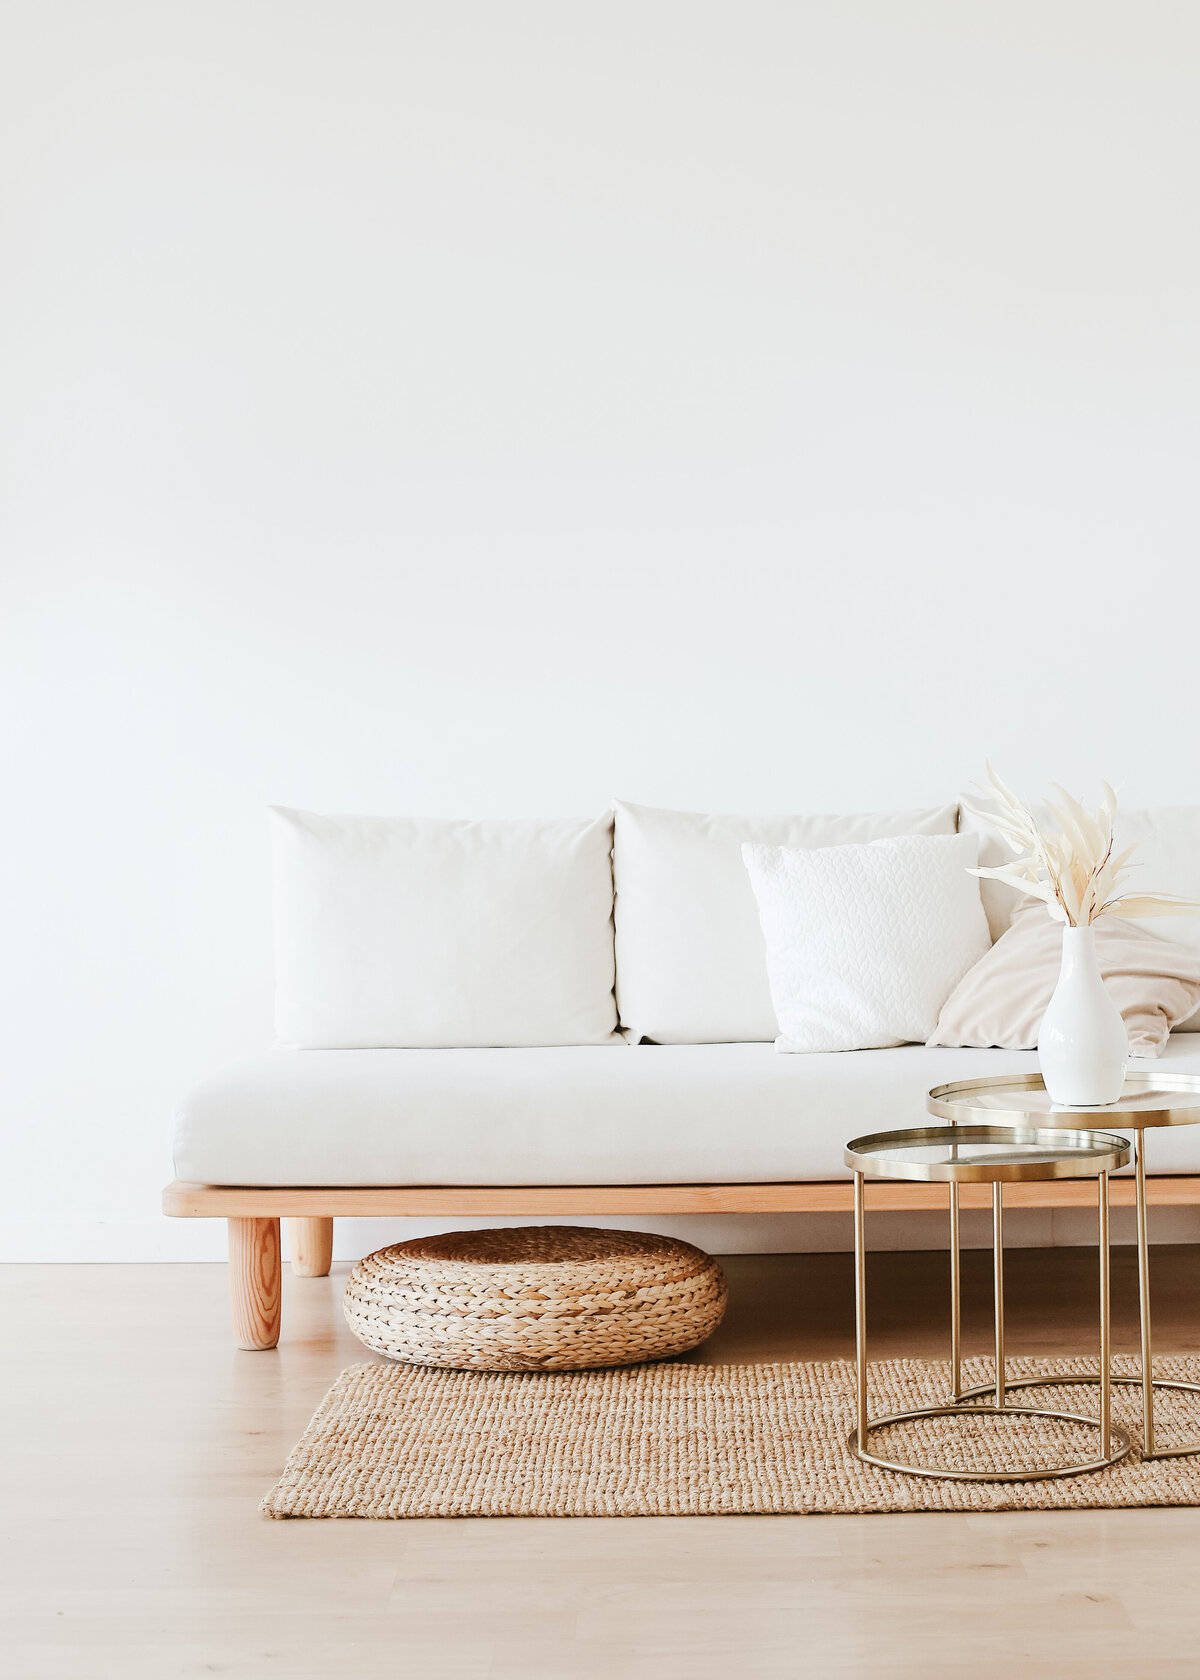 A white sofa is against a white wall, next to a natural sisal rug and jute pouffe with gold coffee tables.